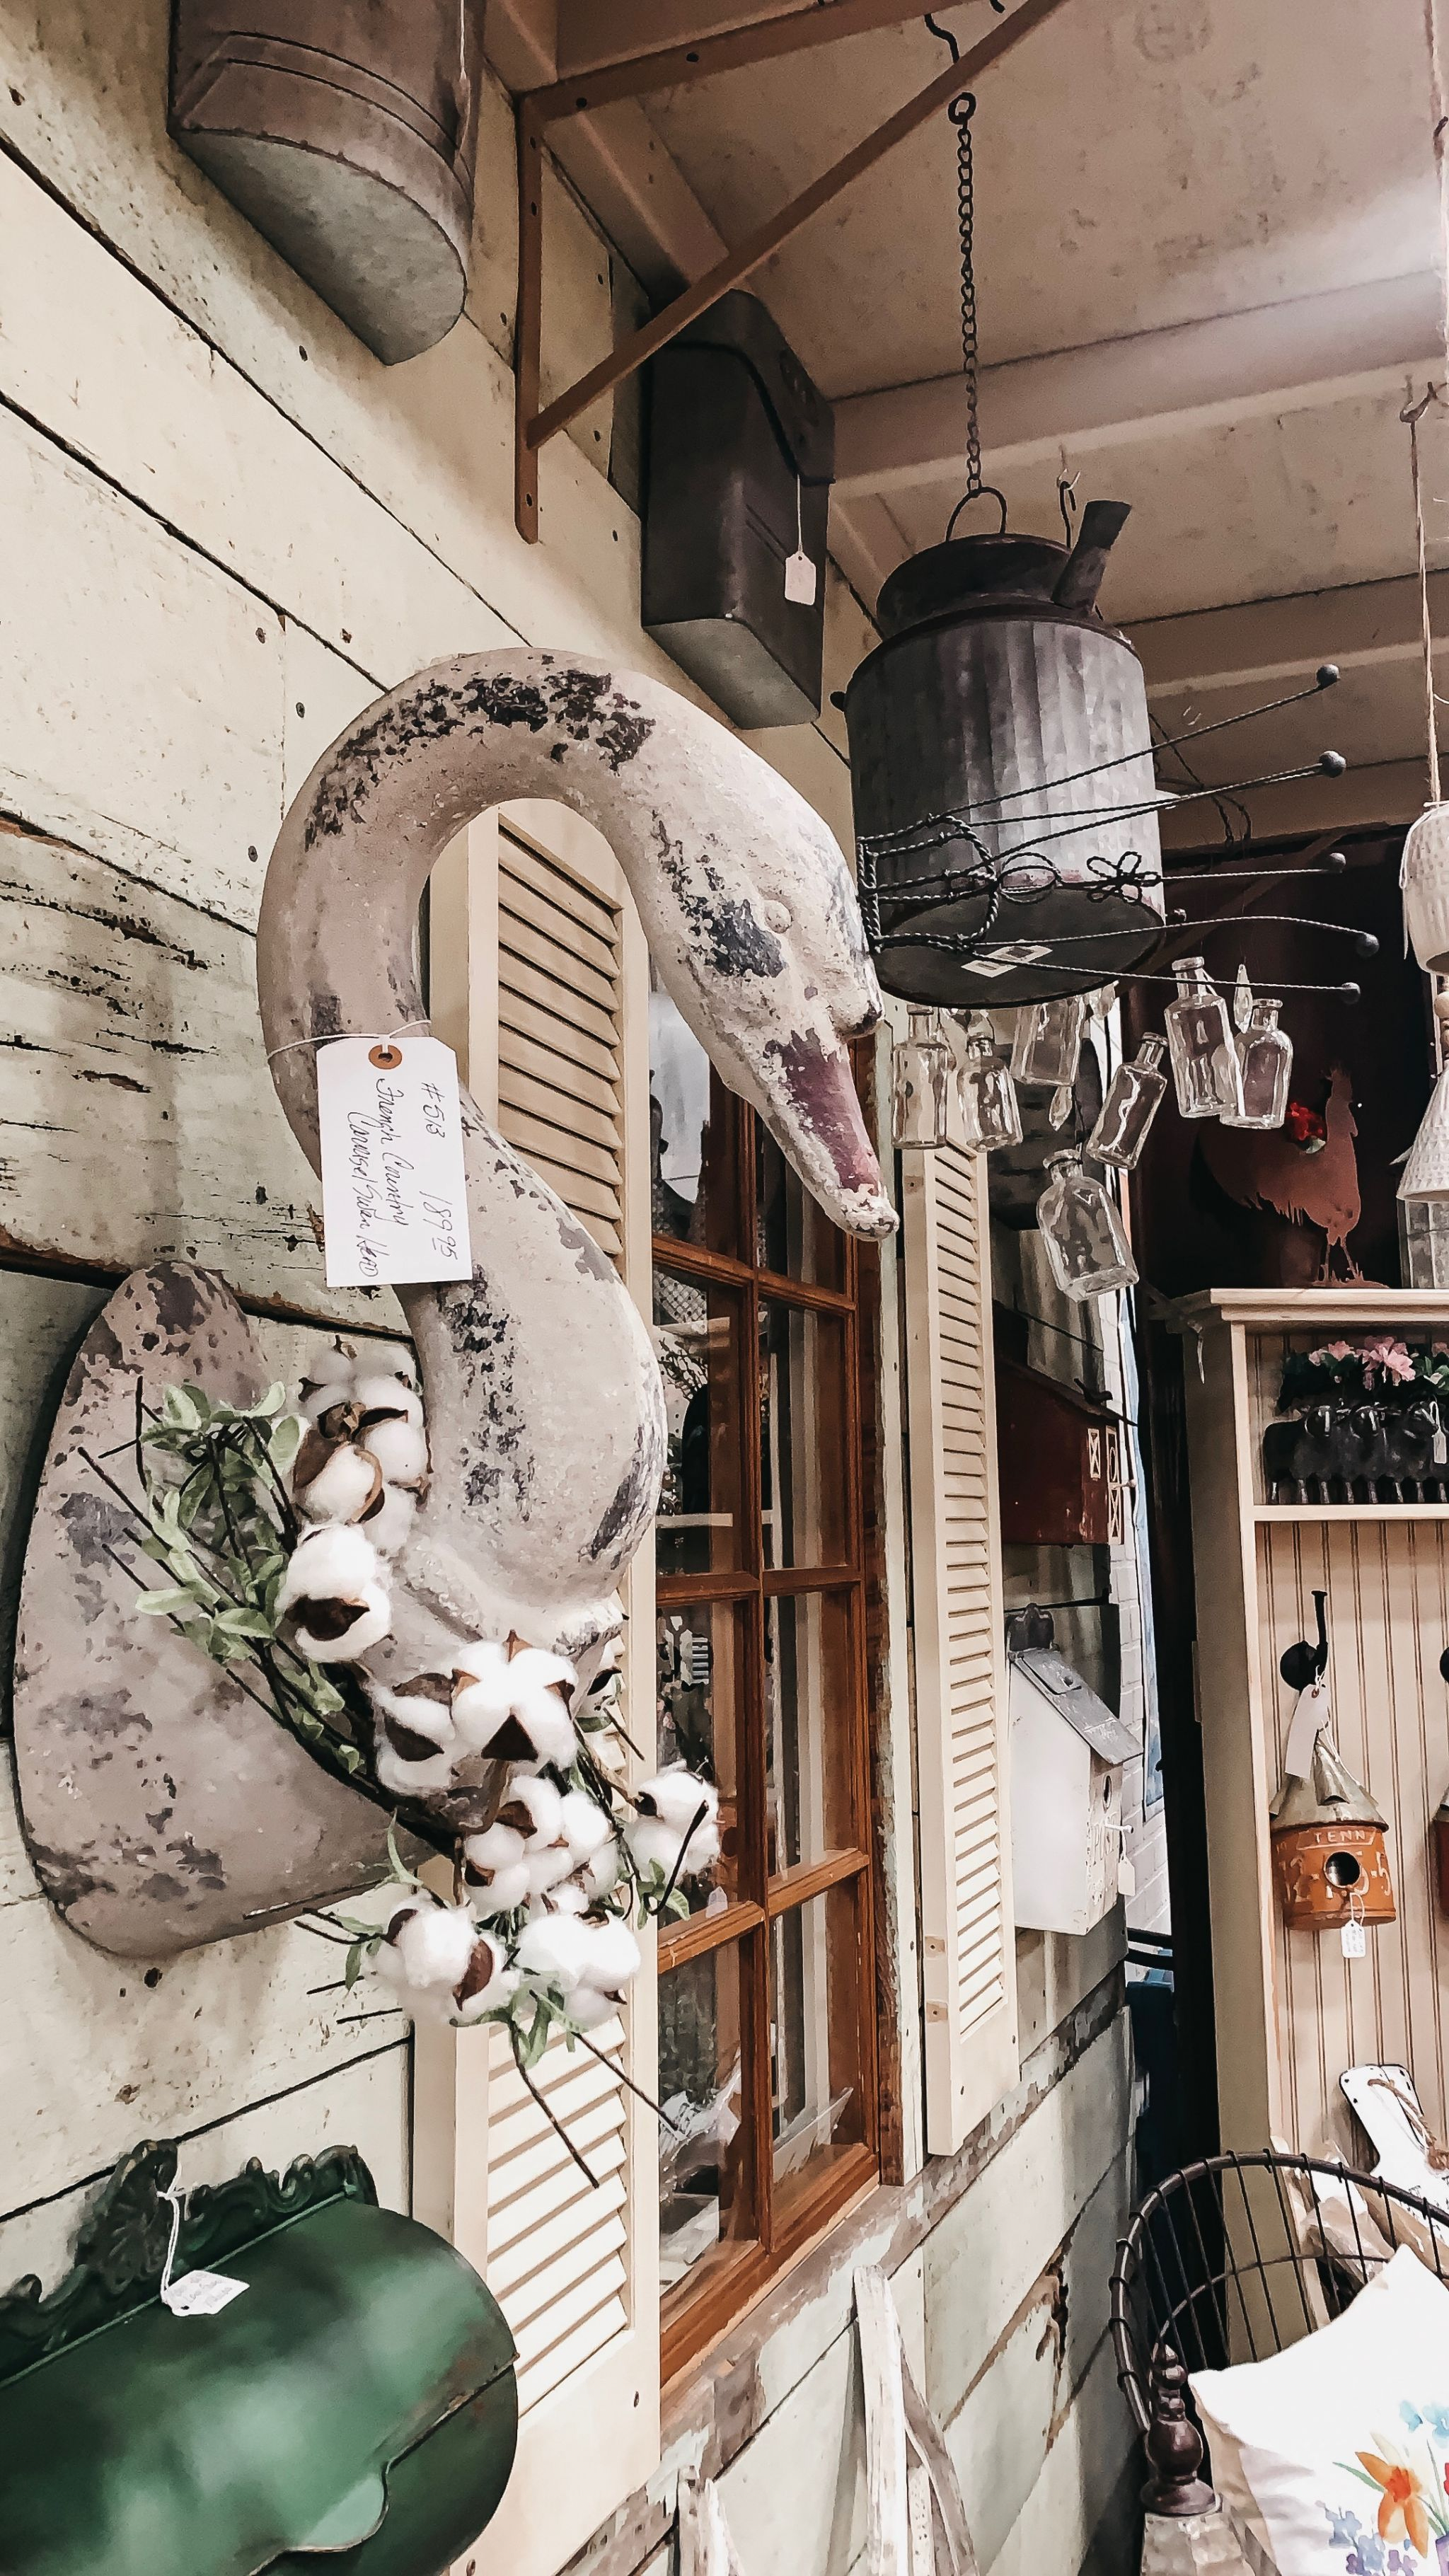 Chattanooga antiques